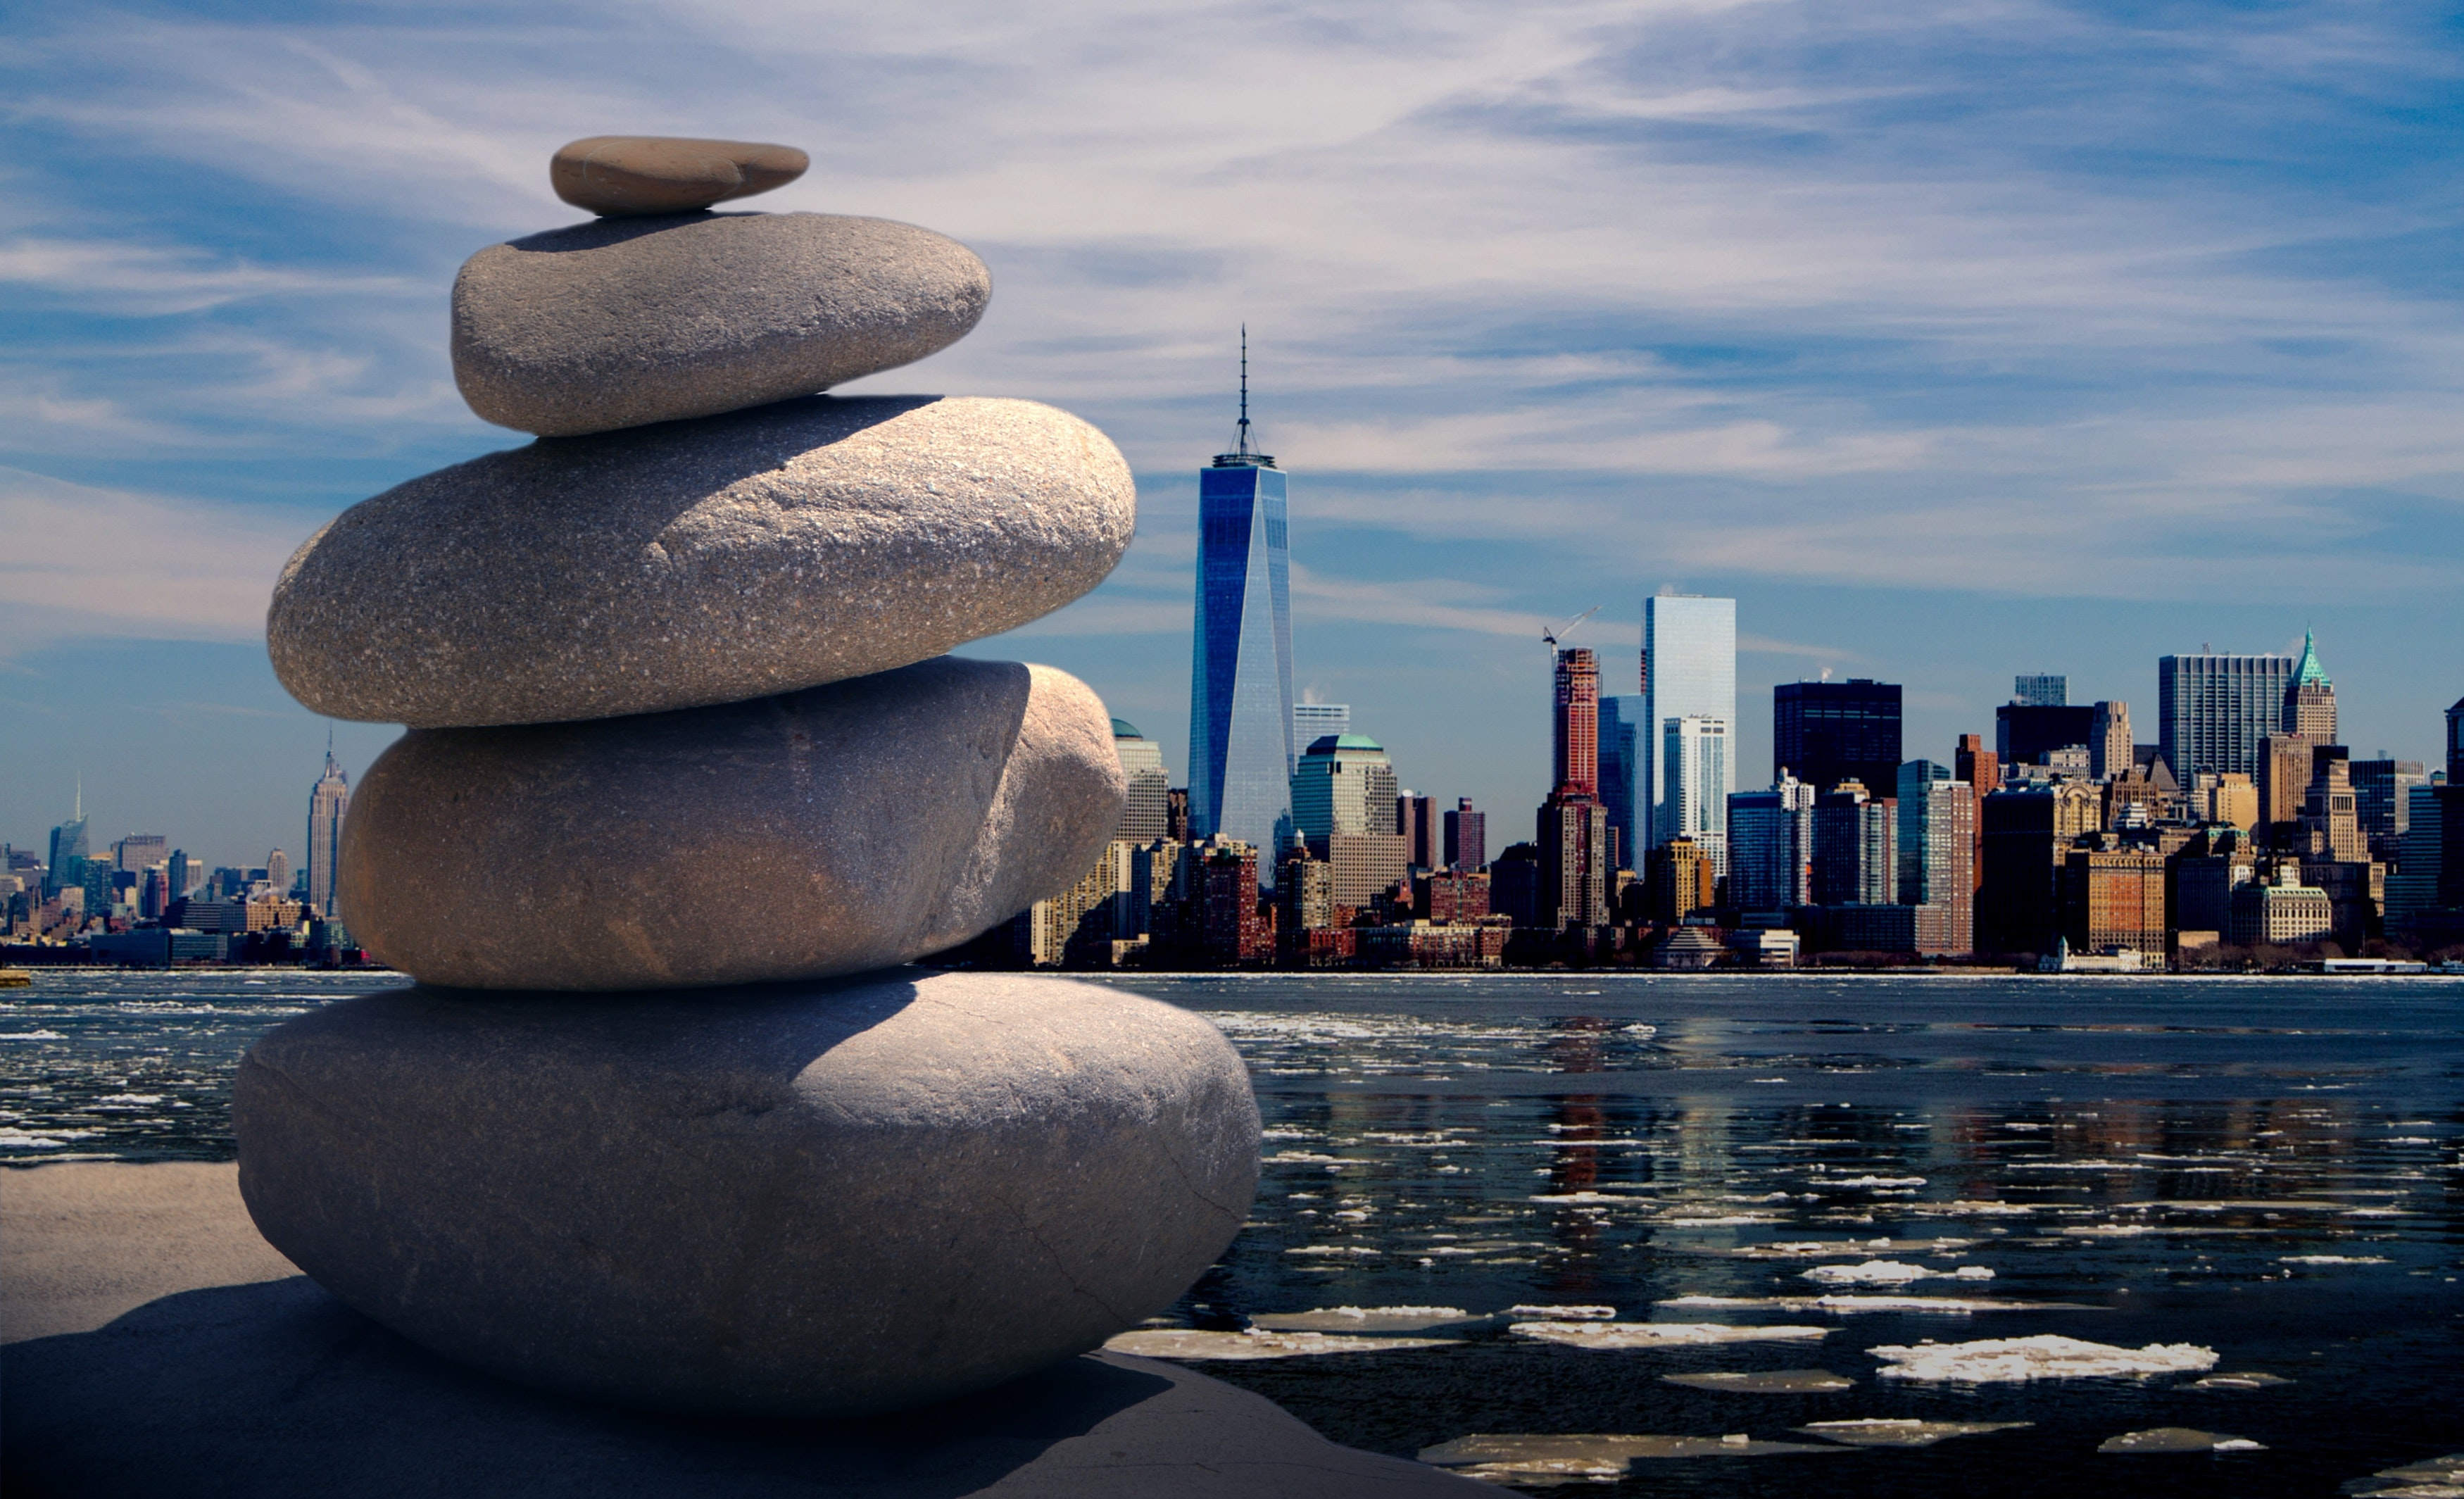 stones balanced on top of one another in front of a city skyline to represent work-life balance.